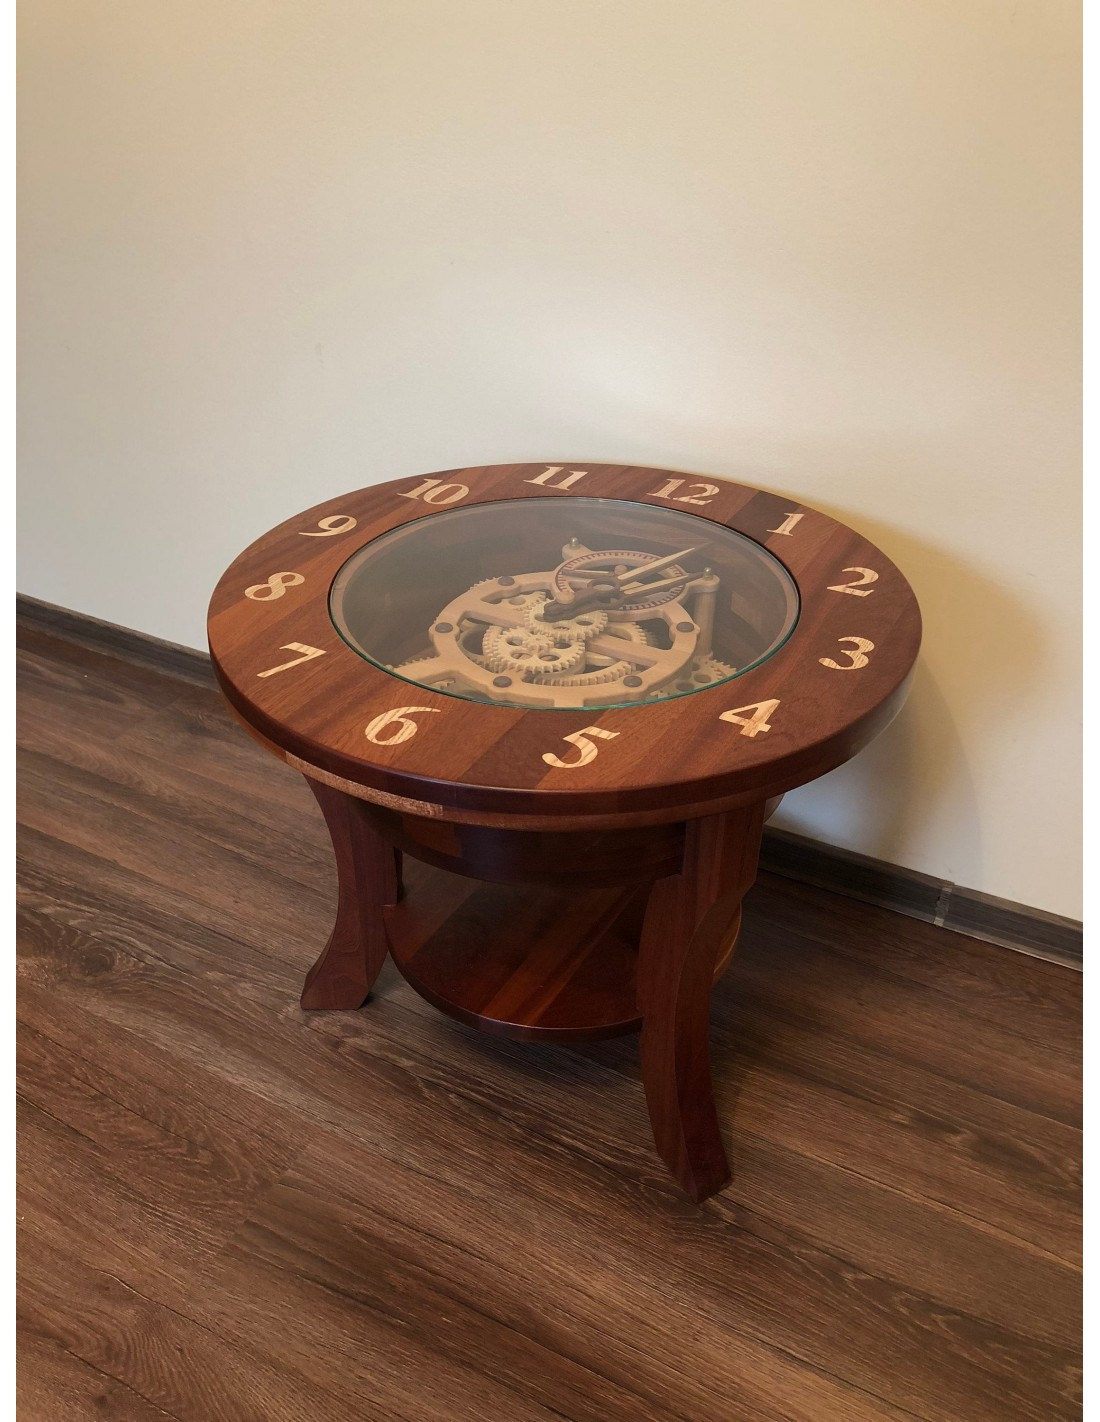 - Coffee Table With Wooden Clock